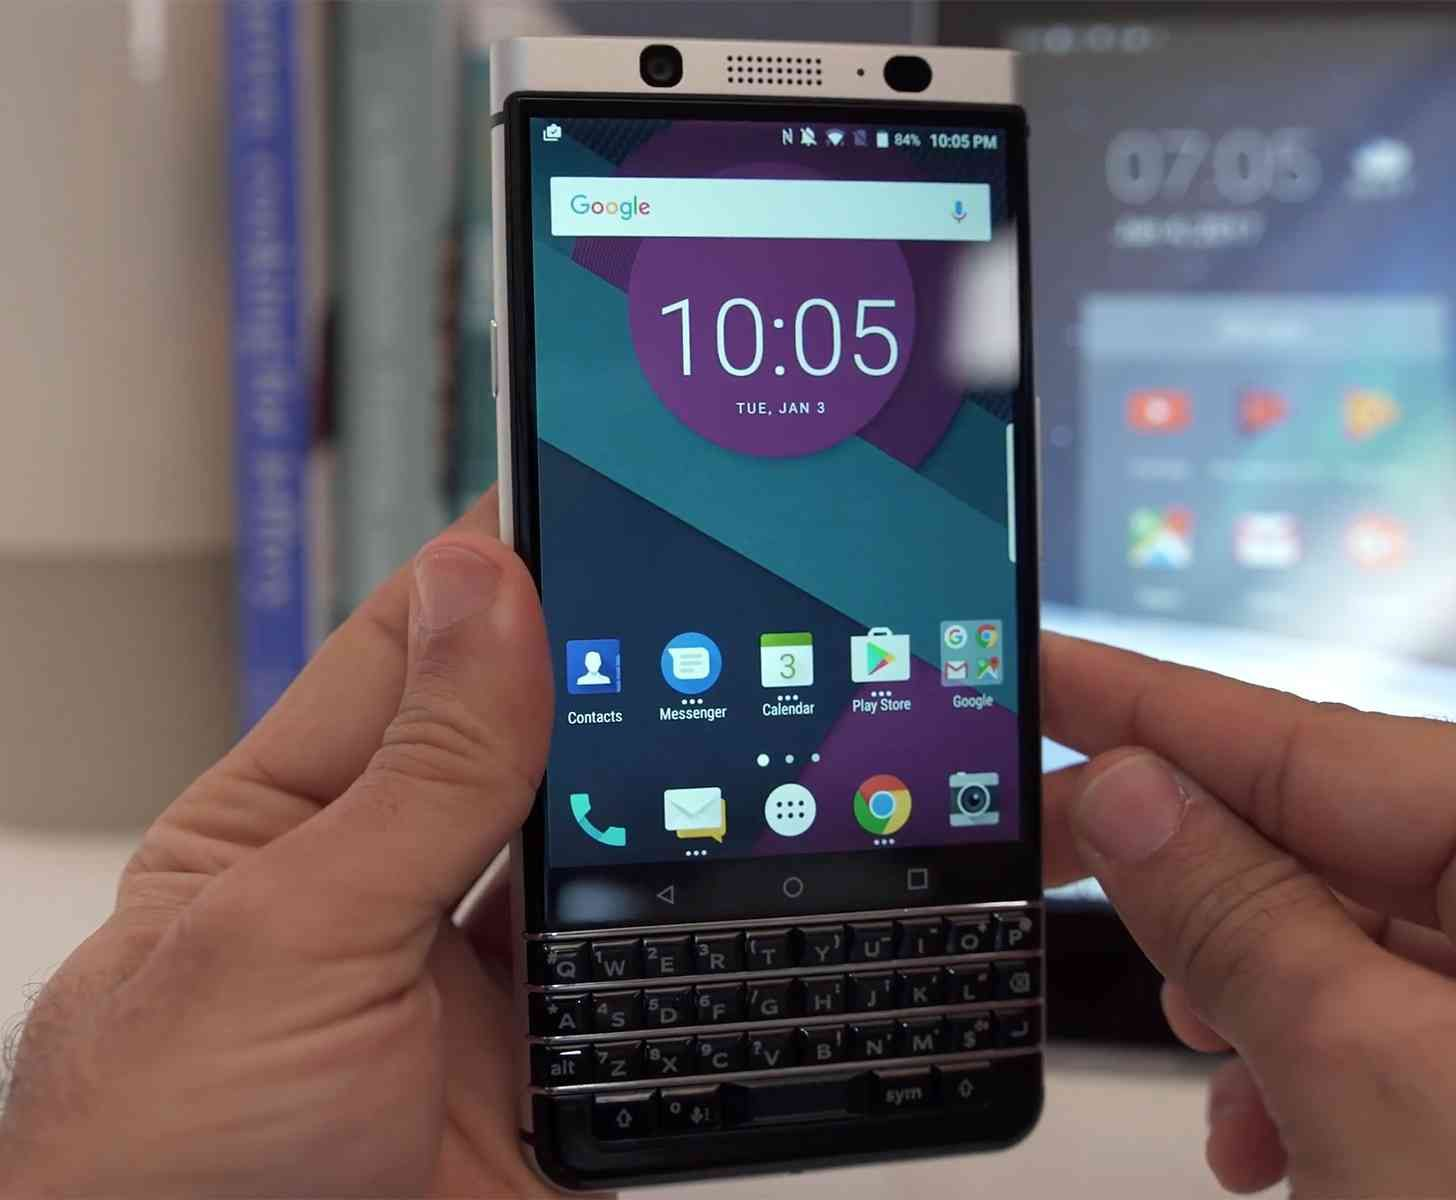 Uncategorized www google com br google chrome android - When Tcl Officially Revealed The Blackberry Keyone Last Month It Said That The Keyboard Clad Android Phone Would Launch In April